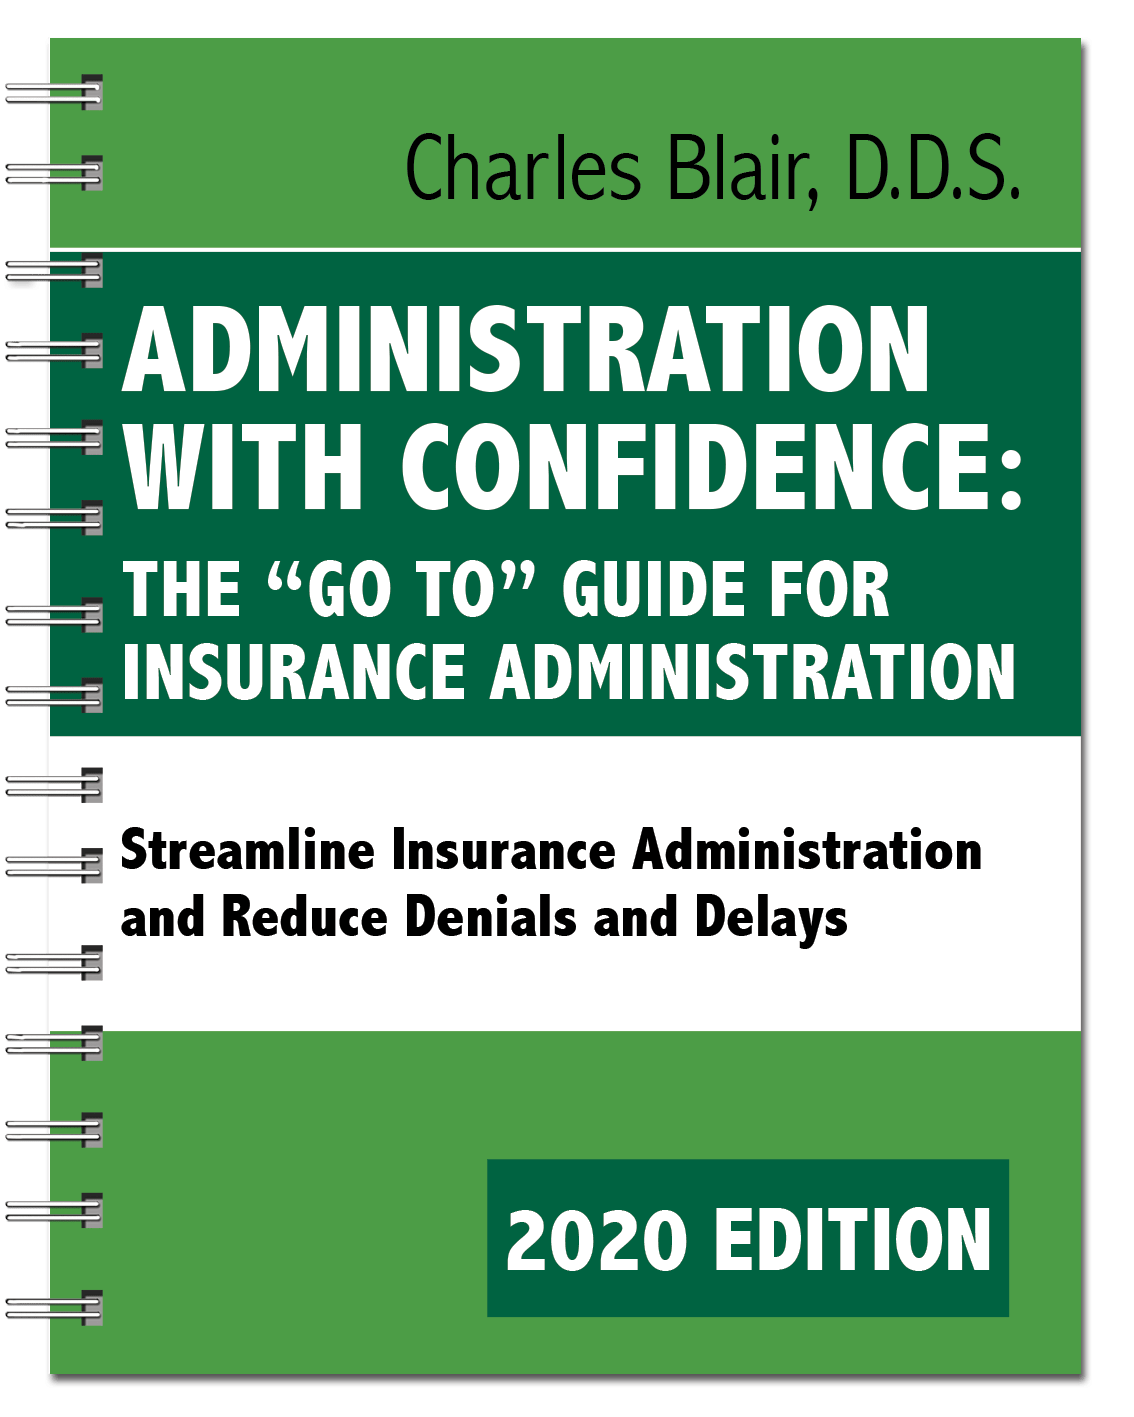 Administration with Confidence: The